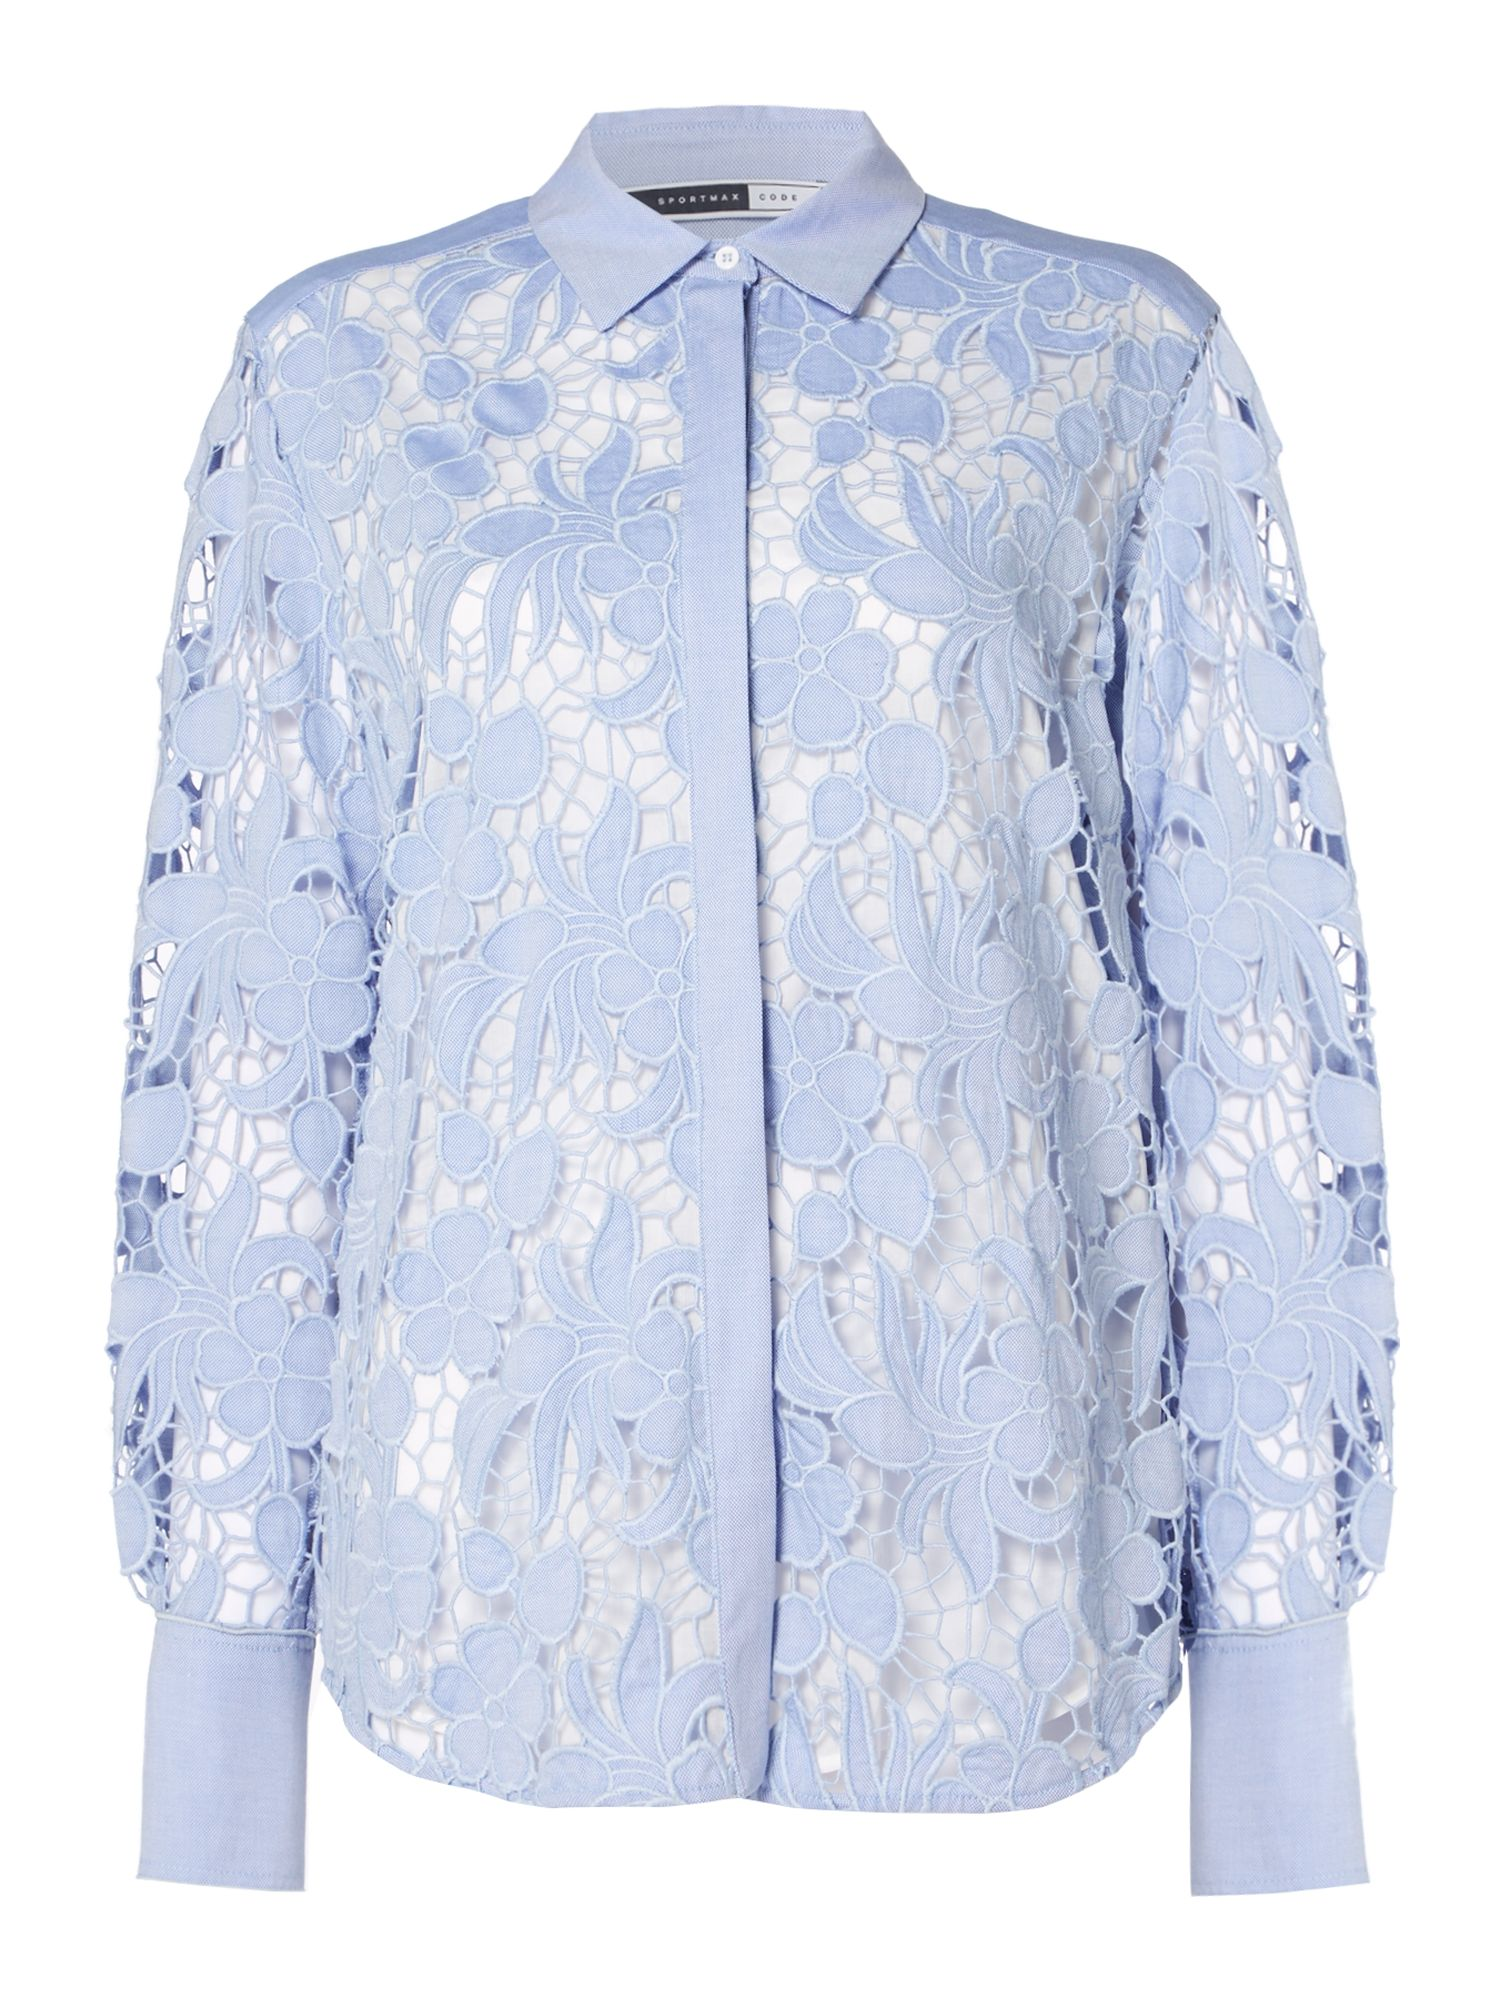 Sportmax Code Longsleeve lace shirt with floral decoration, Light Blue